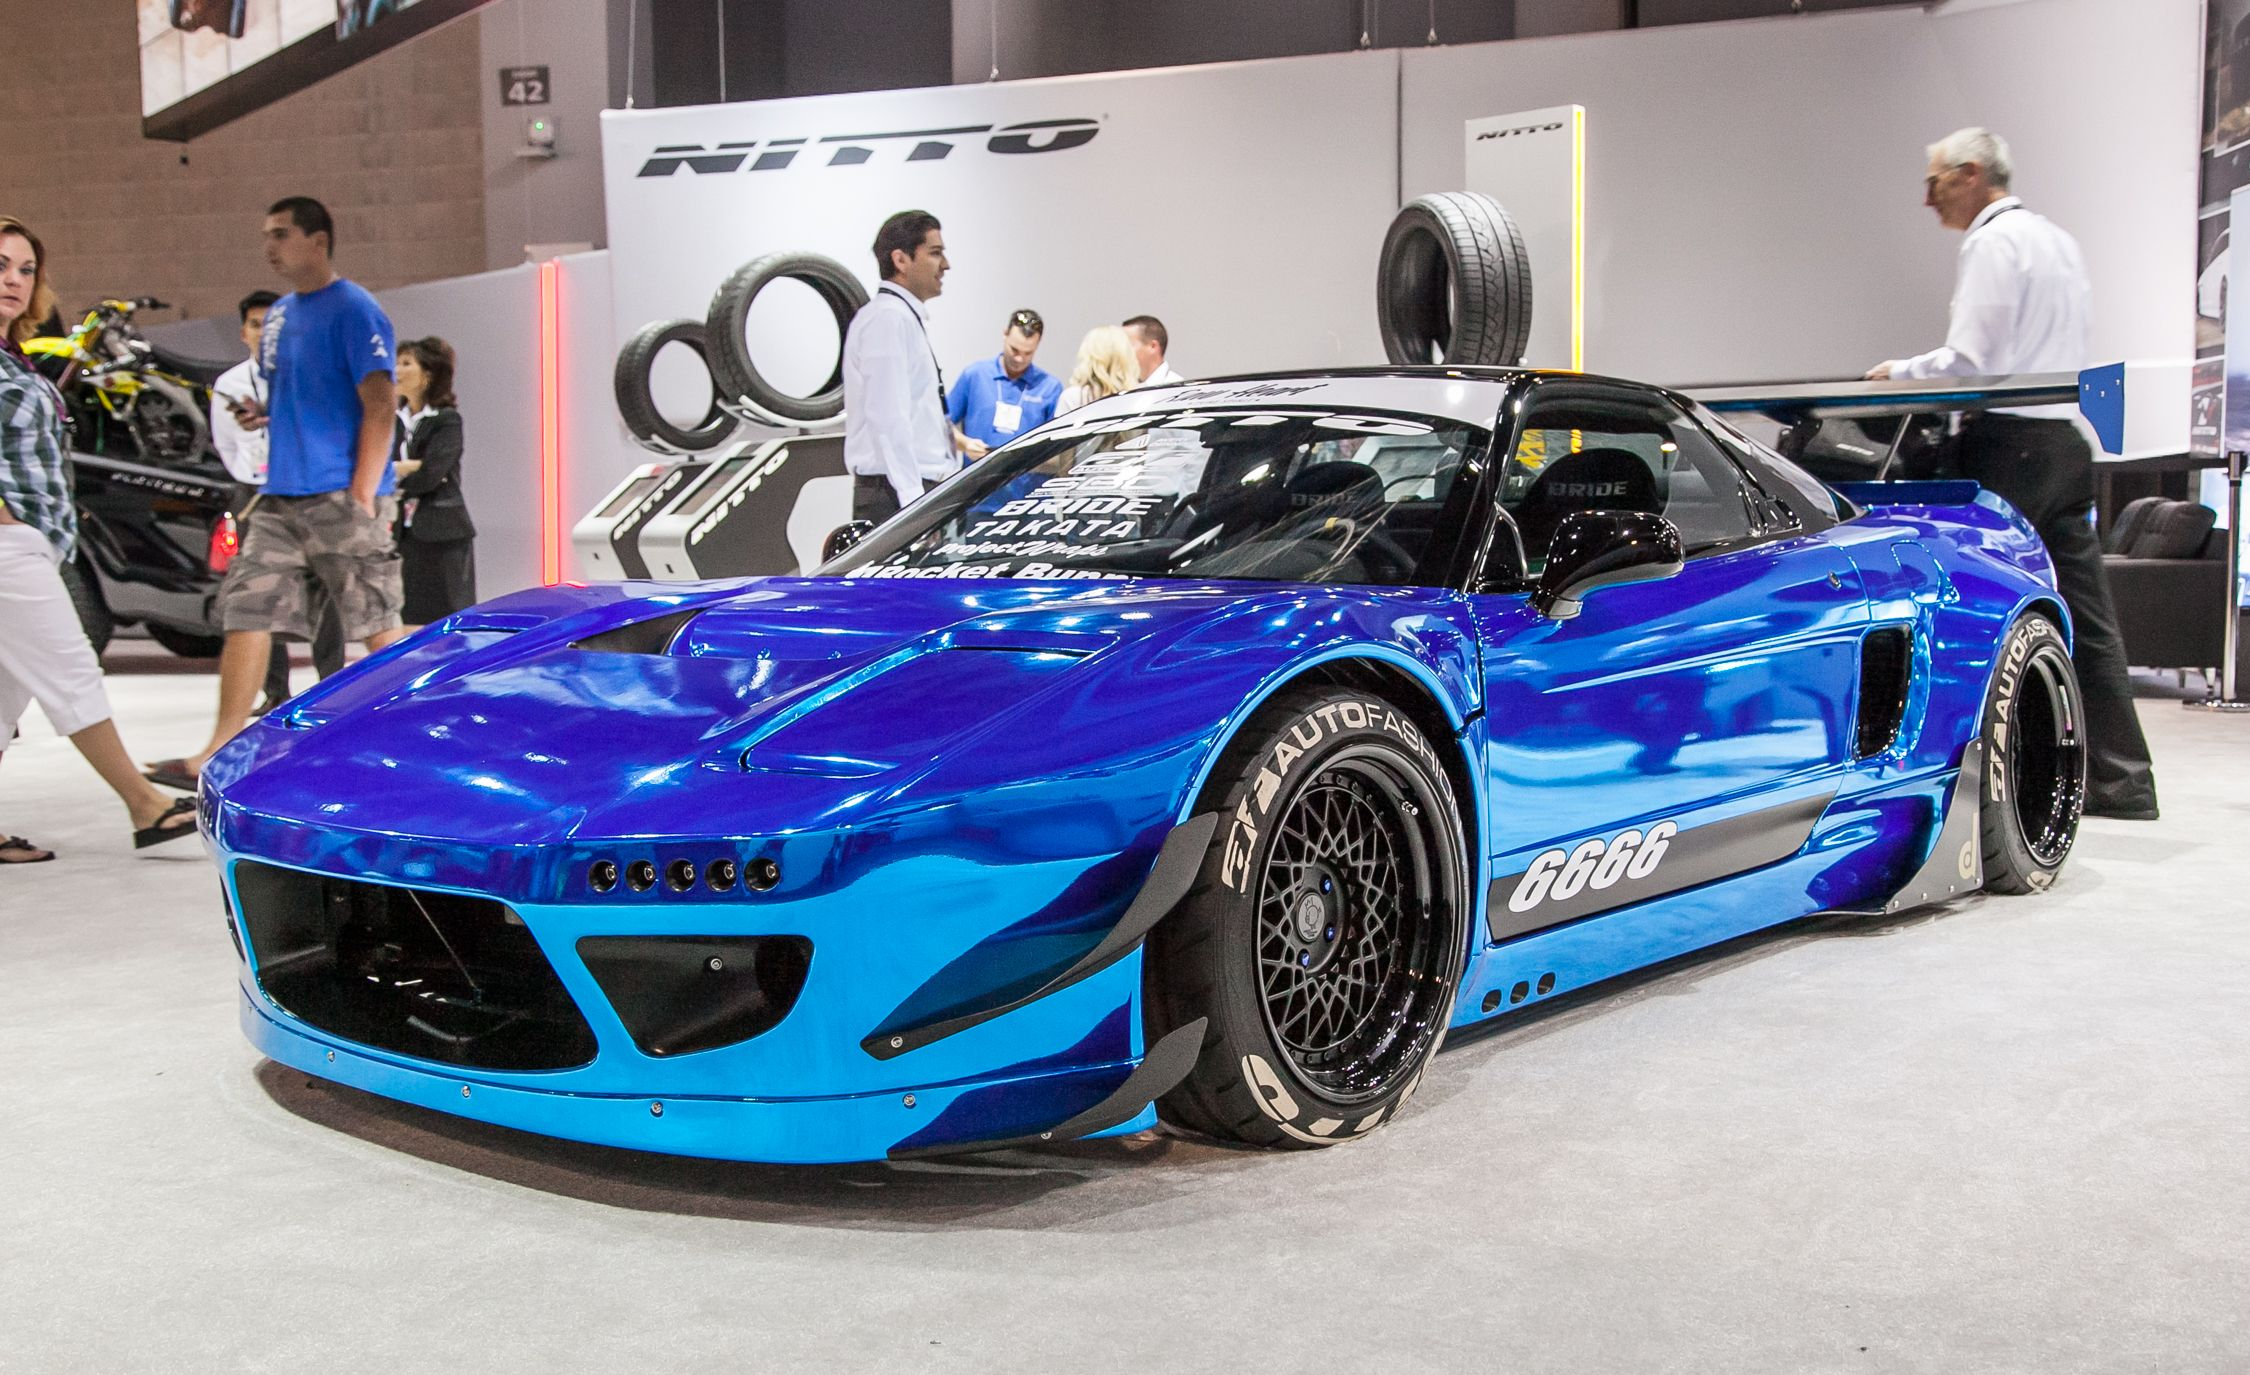 Car color kit - The Rocket Bunny Body Kit On This Early Nsx Channels The Spirit Of The Nsx Super Gt Race Cars Of The Late Nearly Perfectly The Blue Chrome Color Scheme